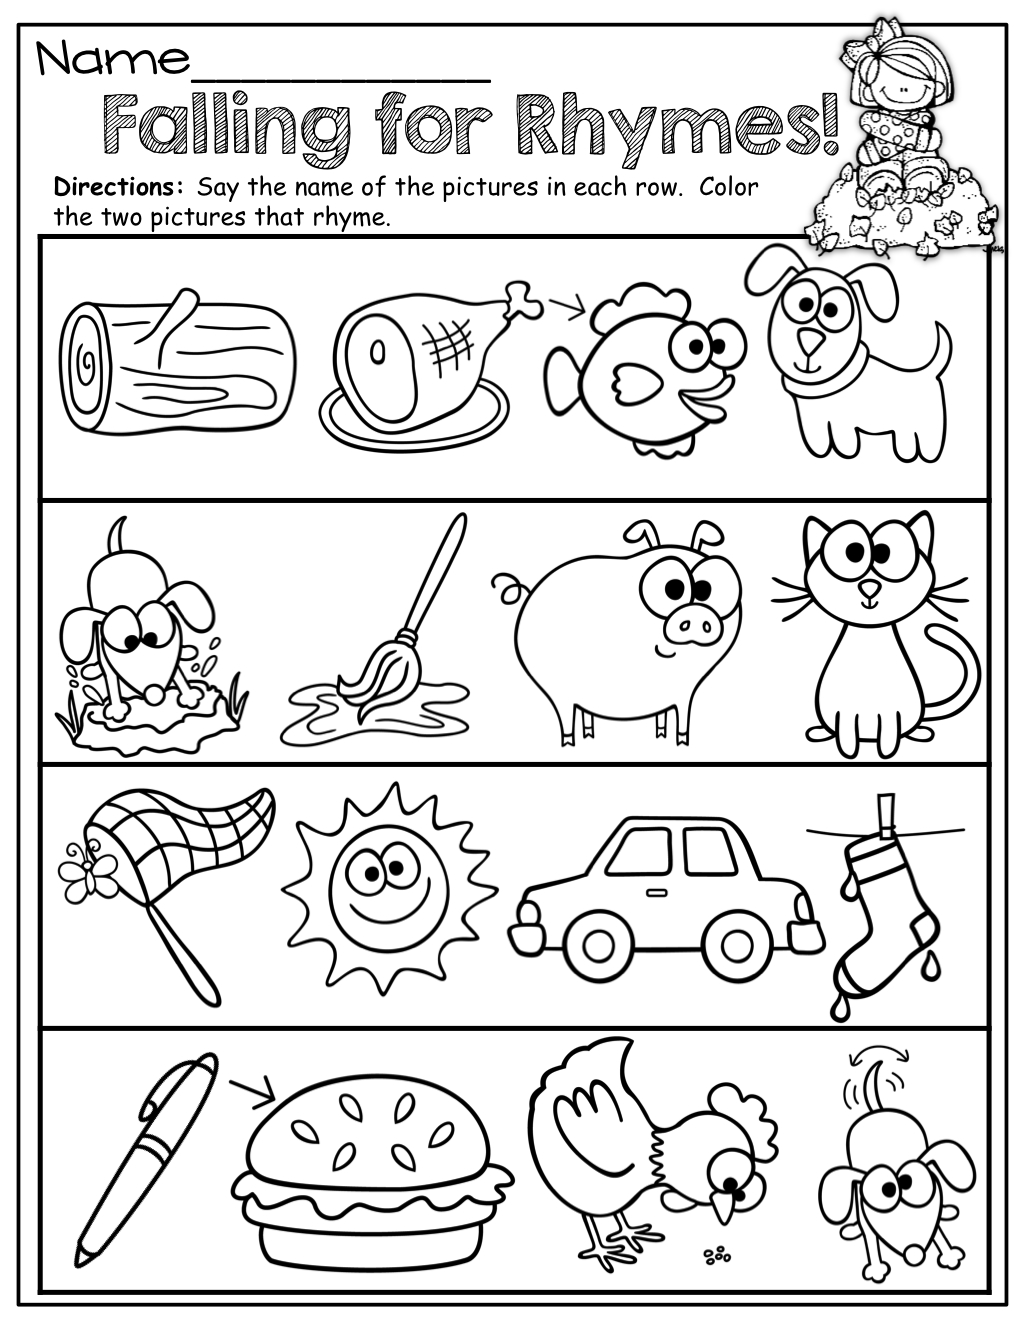 Repinnedmyslpmaterials Visit Our Page For Free Speech - Free Printable Rhyming Activities For Kindergarten